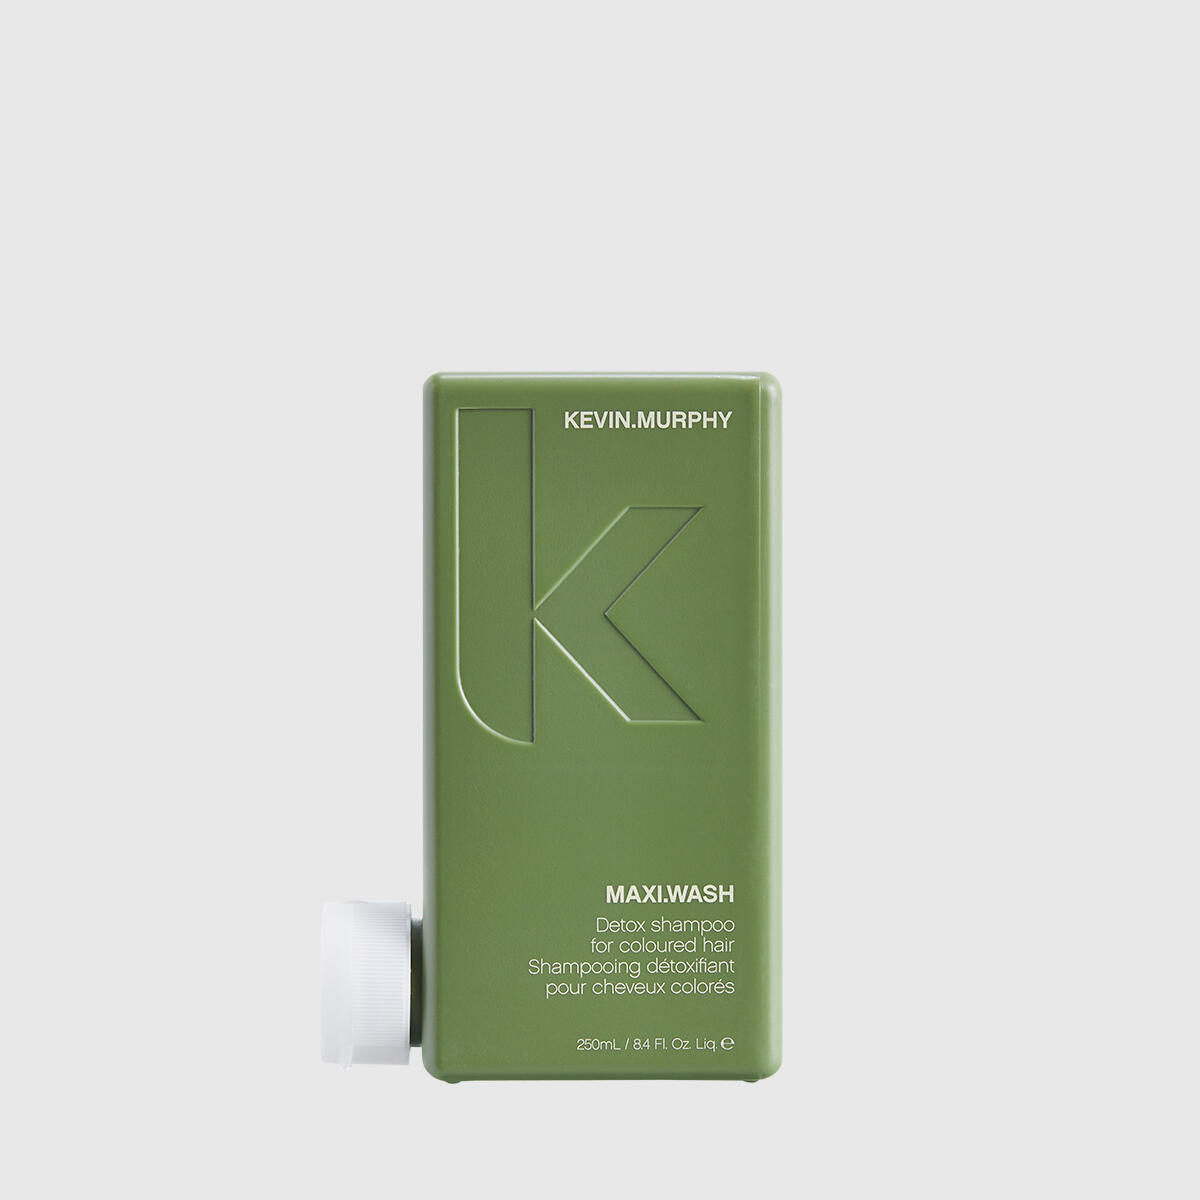 Kevin Murphy Maxi Wash null